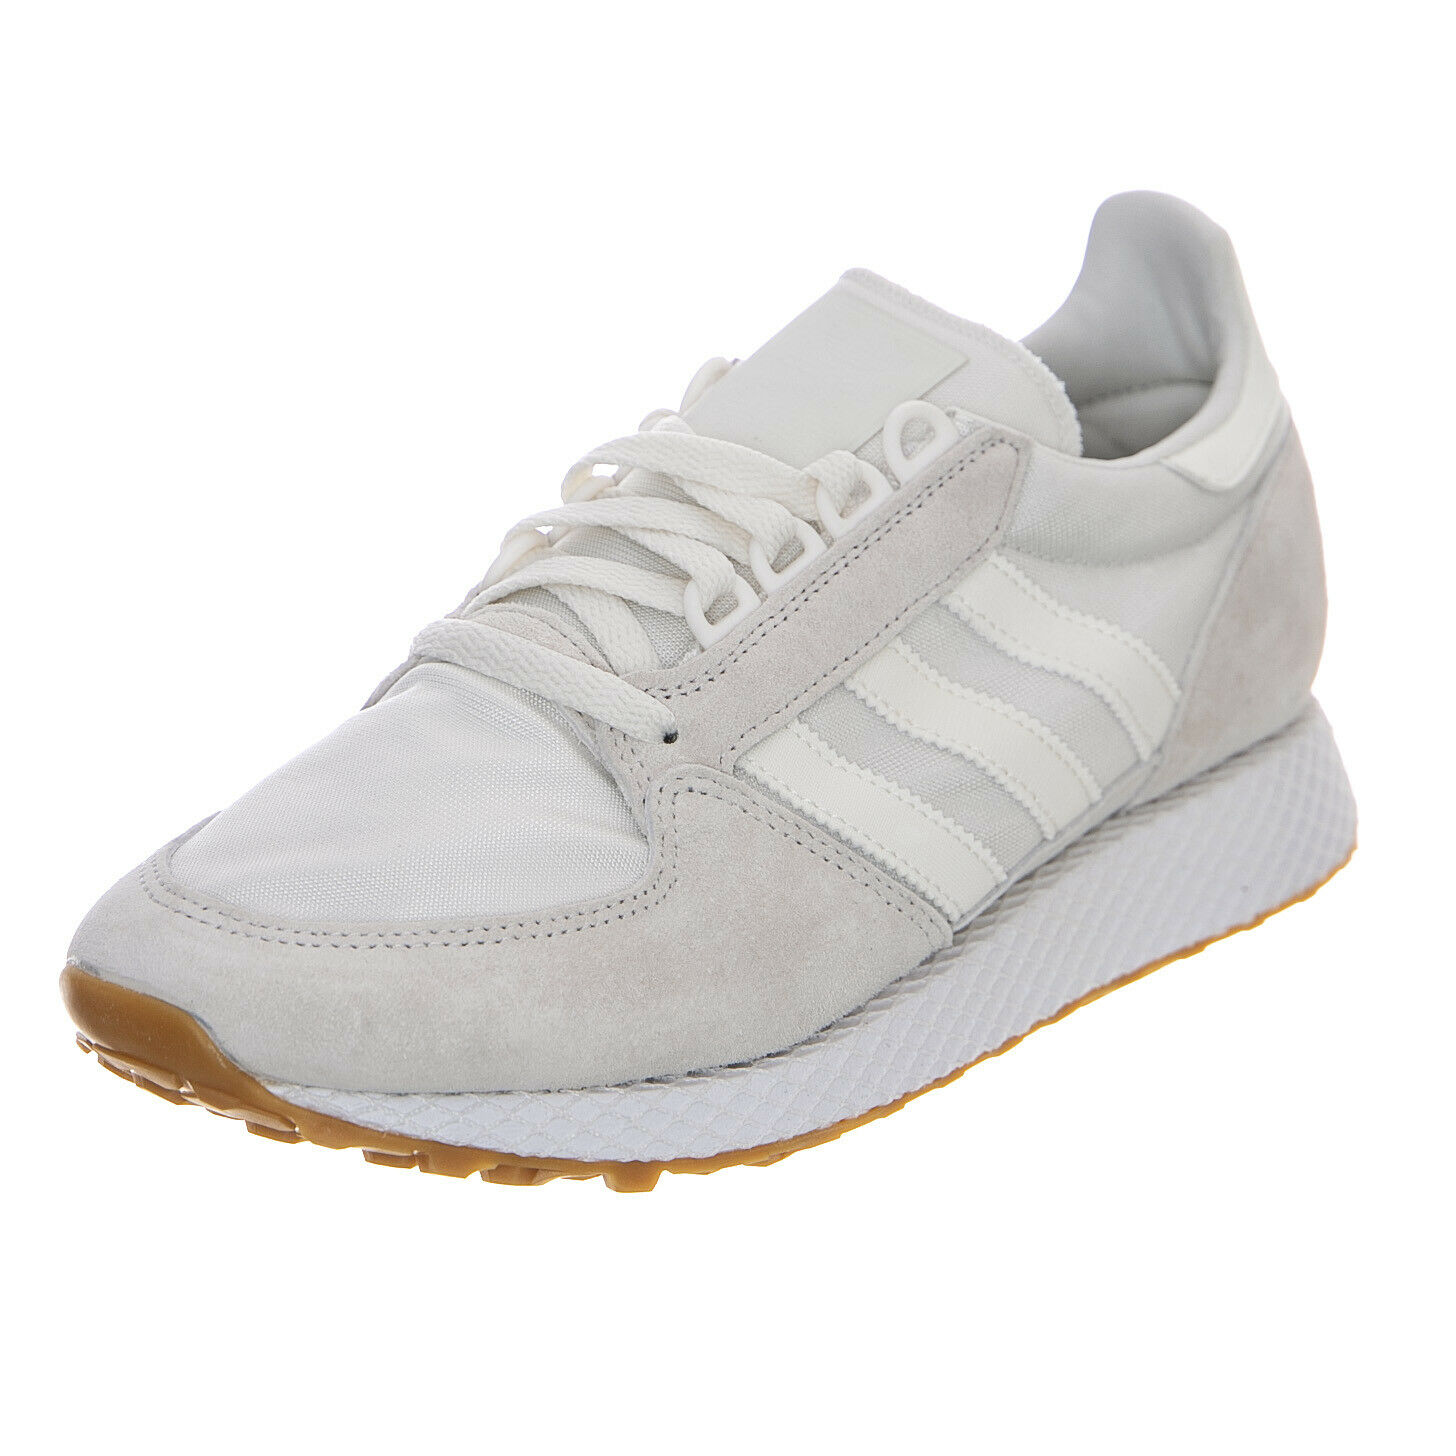 Adidas Forest Grove - Cloud White - Sneakers Low Mens White